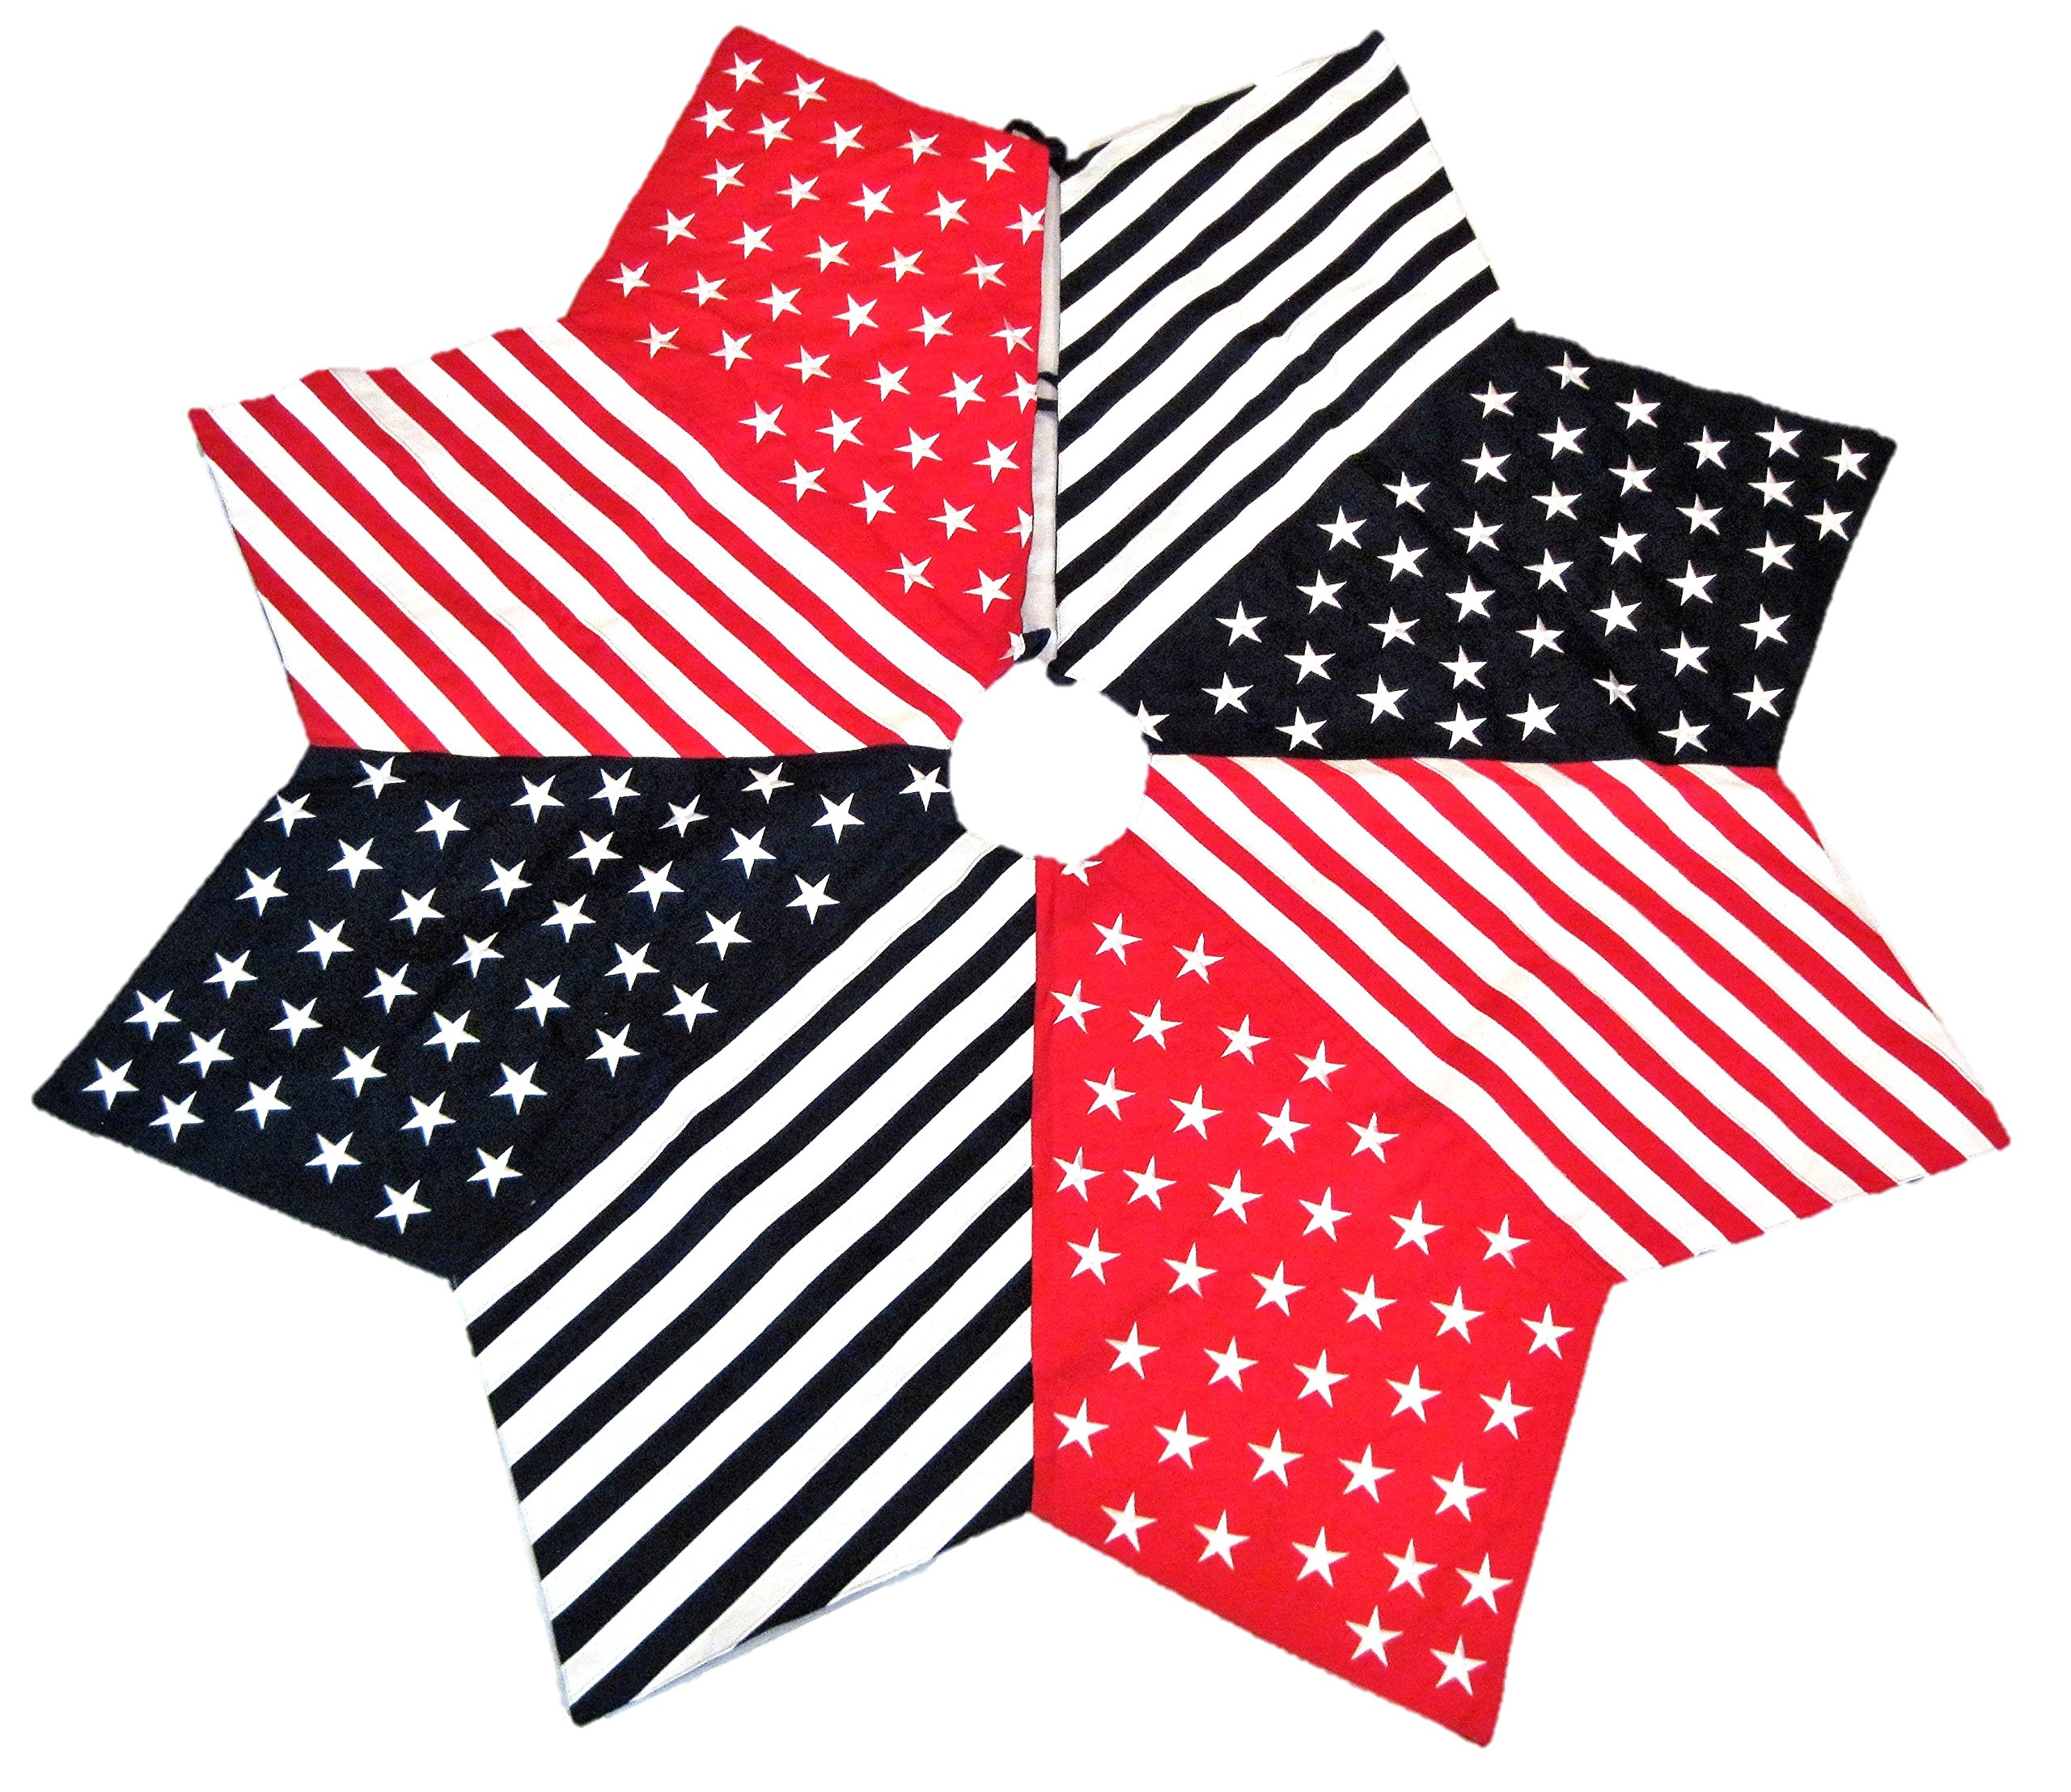 Trimsetter Red White and Blue Patriotic Christmas Tree Skirt